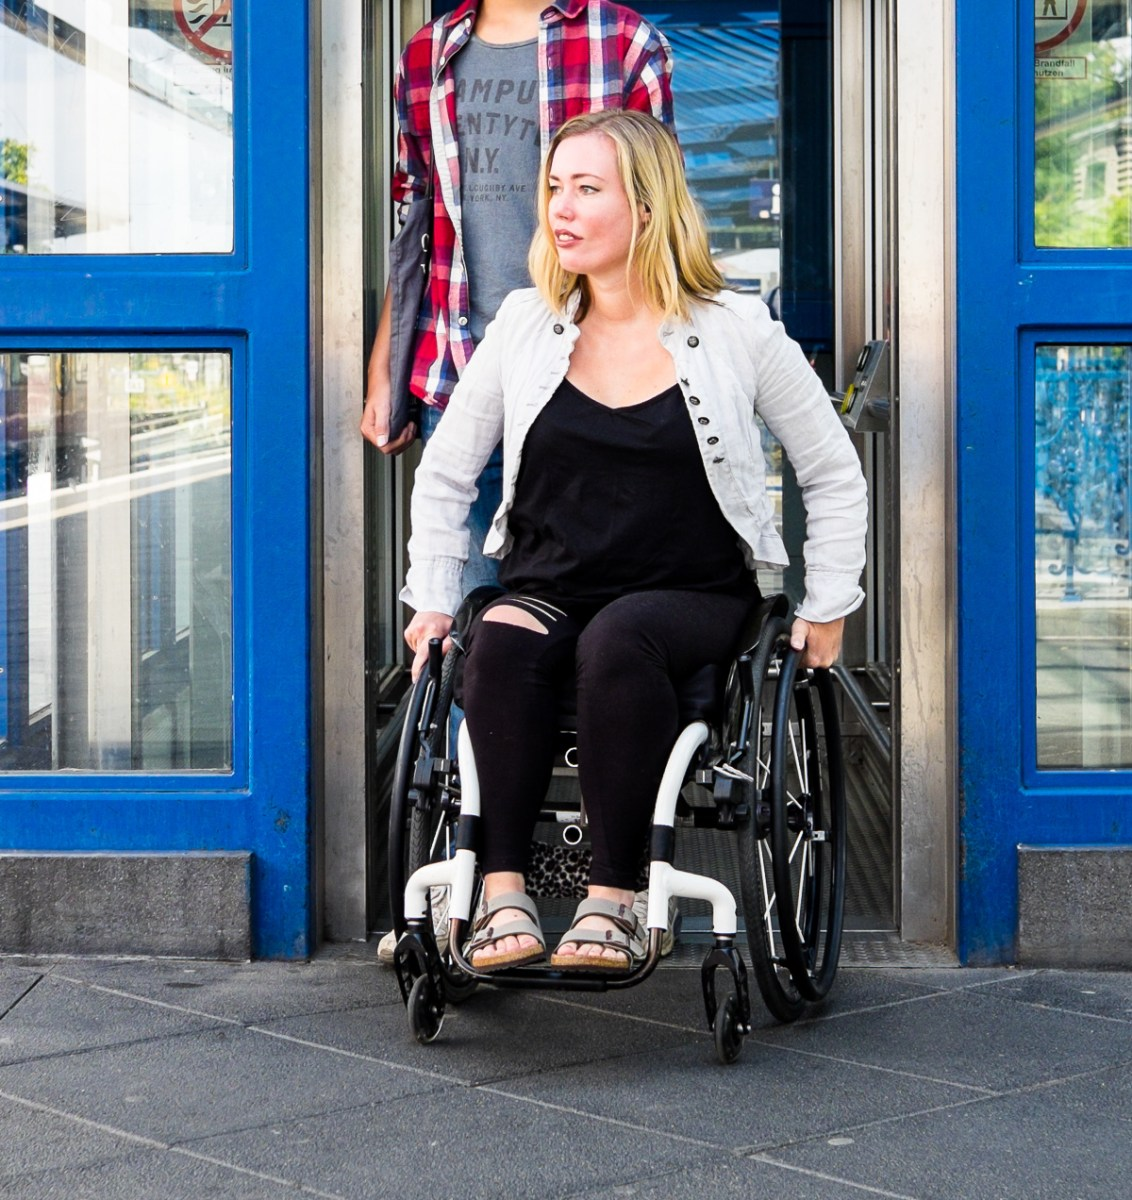 Lisa Parasyn Casting: Seeking Female Wheelchair Performer